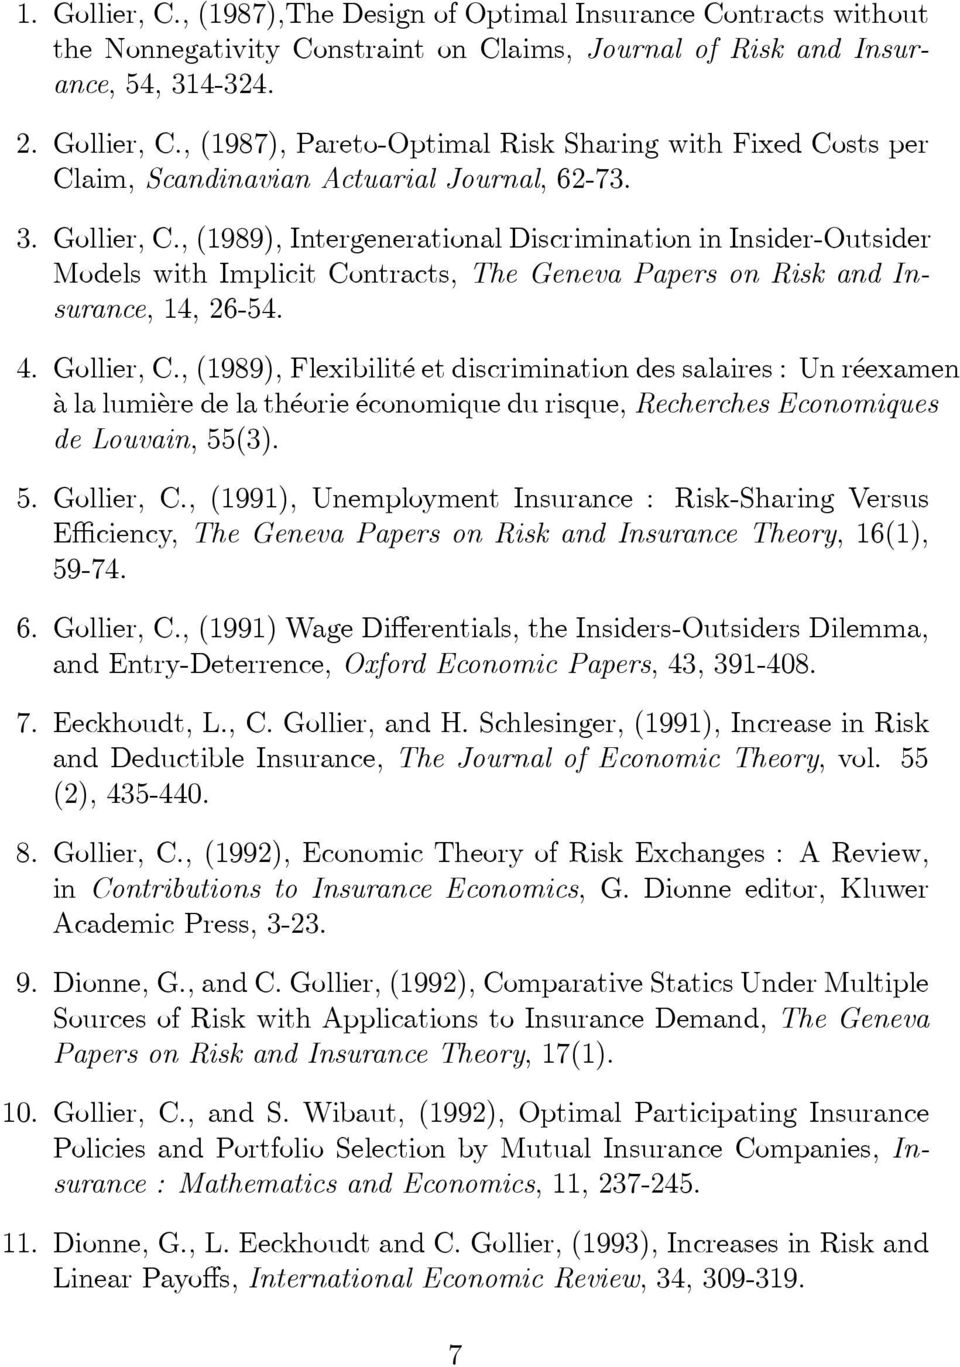 5. Gollier, C., (1991), Unemployment Insurance : Risk-Sharing Versus Efficiency, The Geneva Papers on Risk and Insurance Theory, 16(1), 59-74. 6. Gollier, C., (1991) Wage Differentials, the Insiders-Outsiders Dilemma, and Entry-Deterrence, Oxford Economic Papers, 43, 391-408.